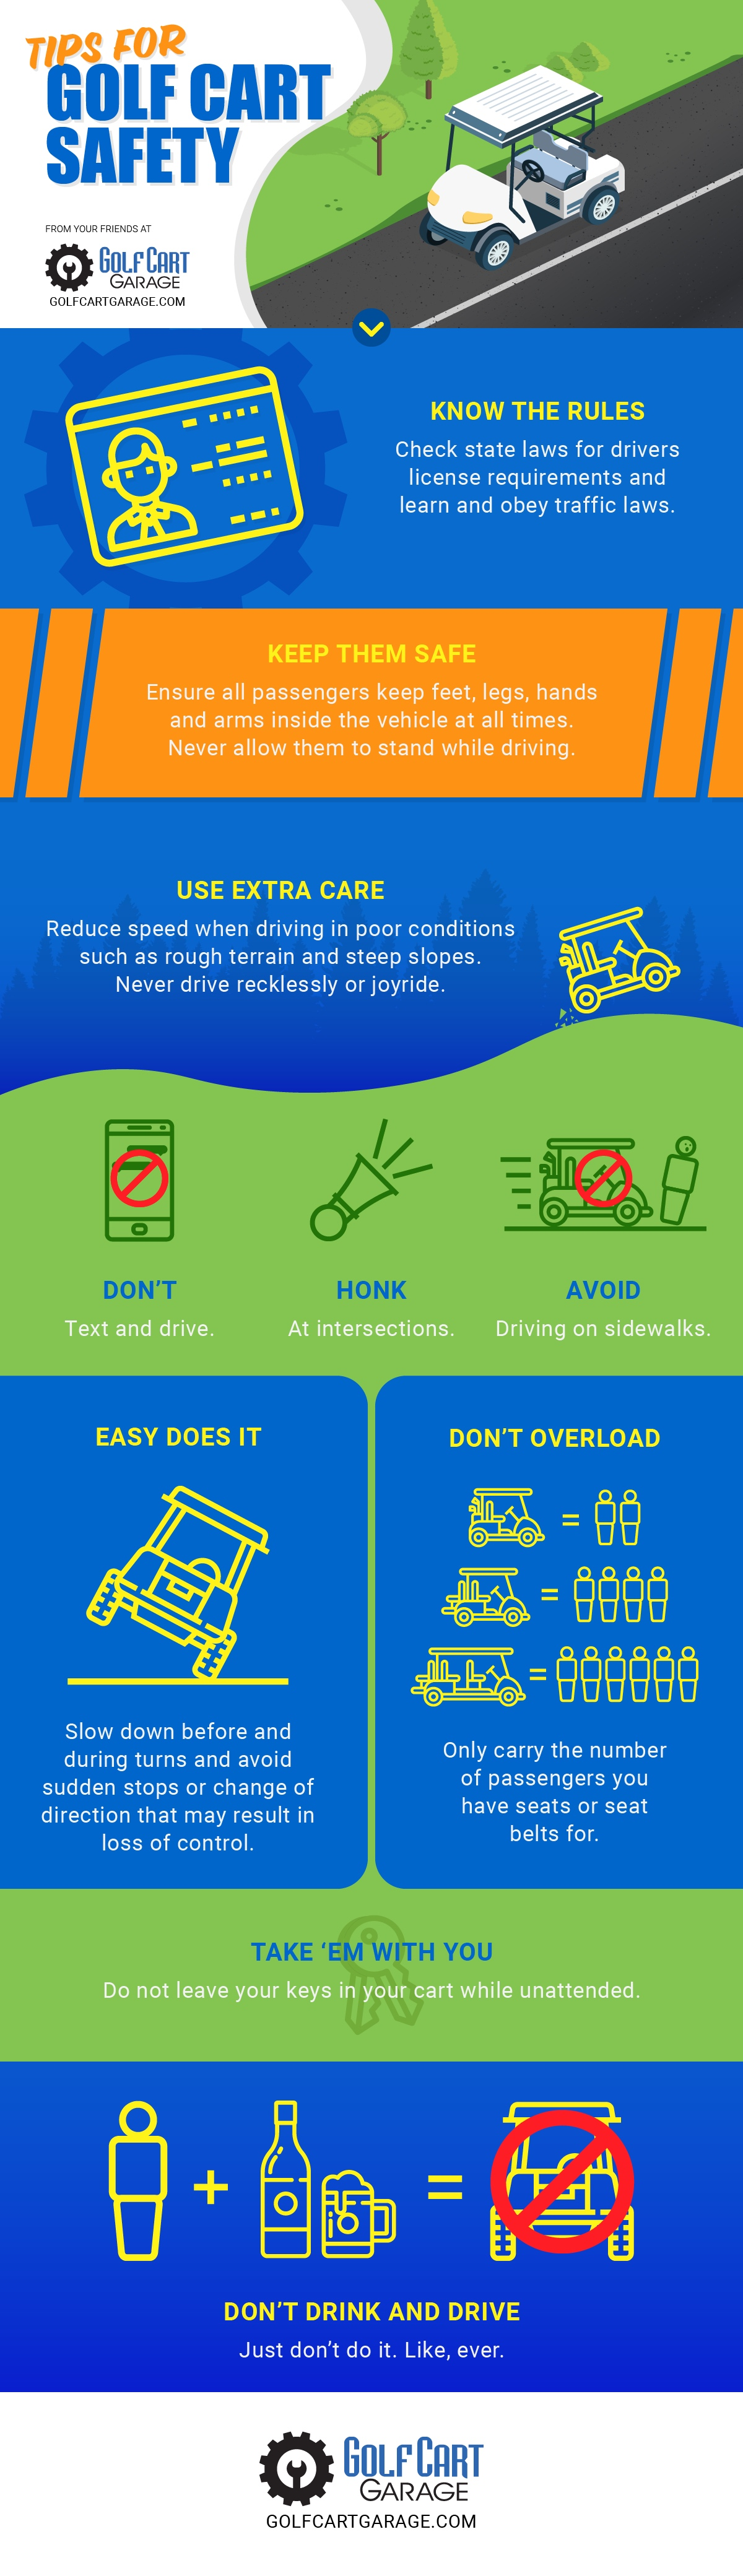 Golf Cart Safety Infographic